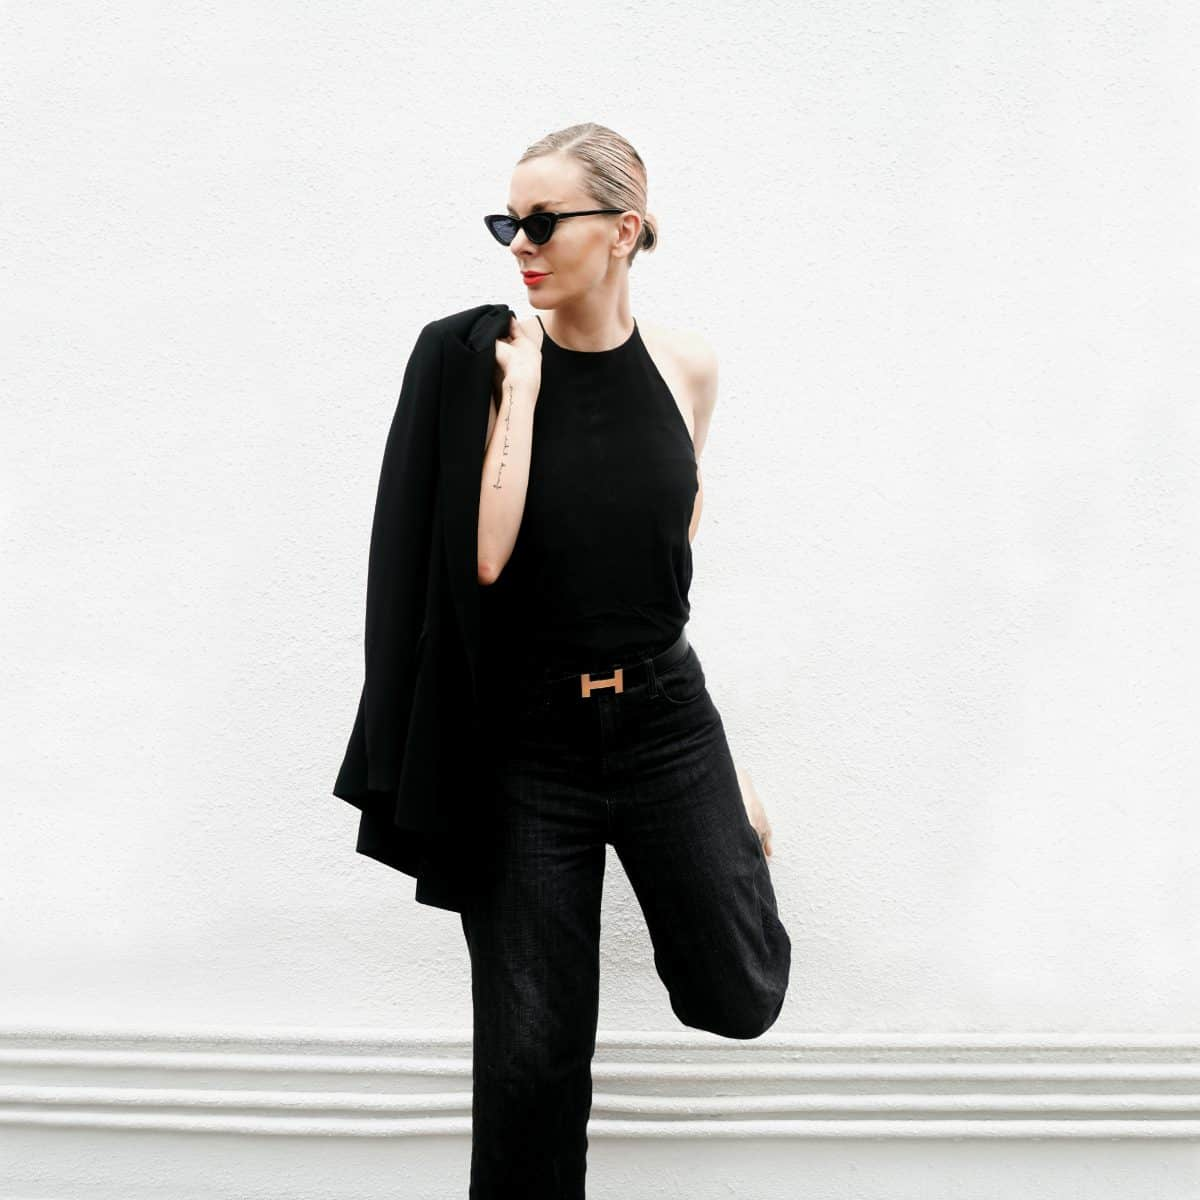 Jo Lorenz wears our OCTAVIA Jean in Washed Black.